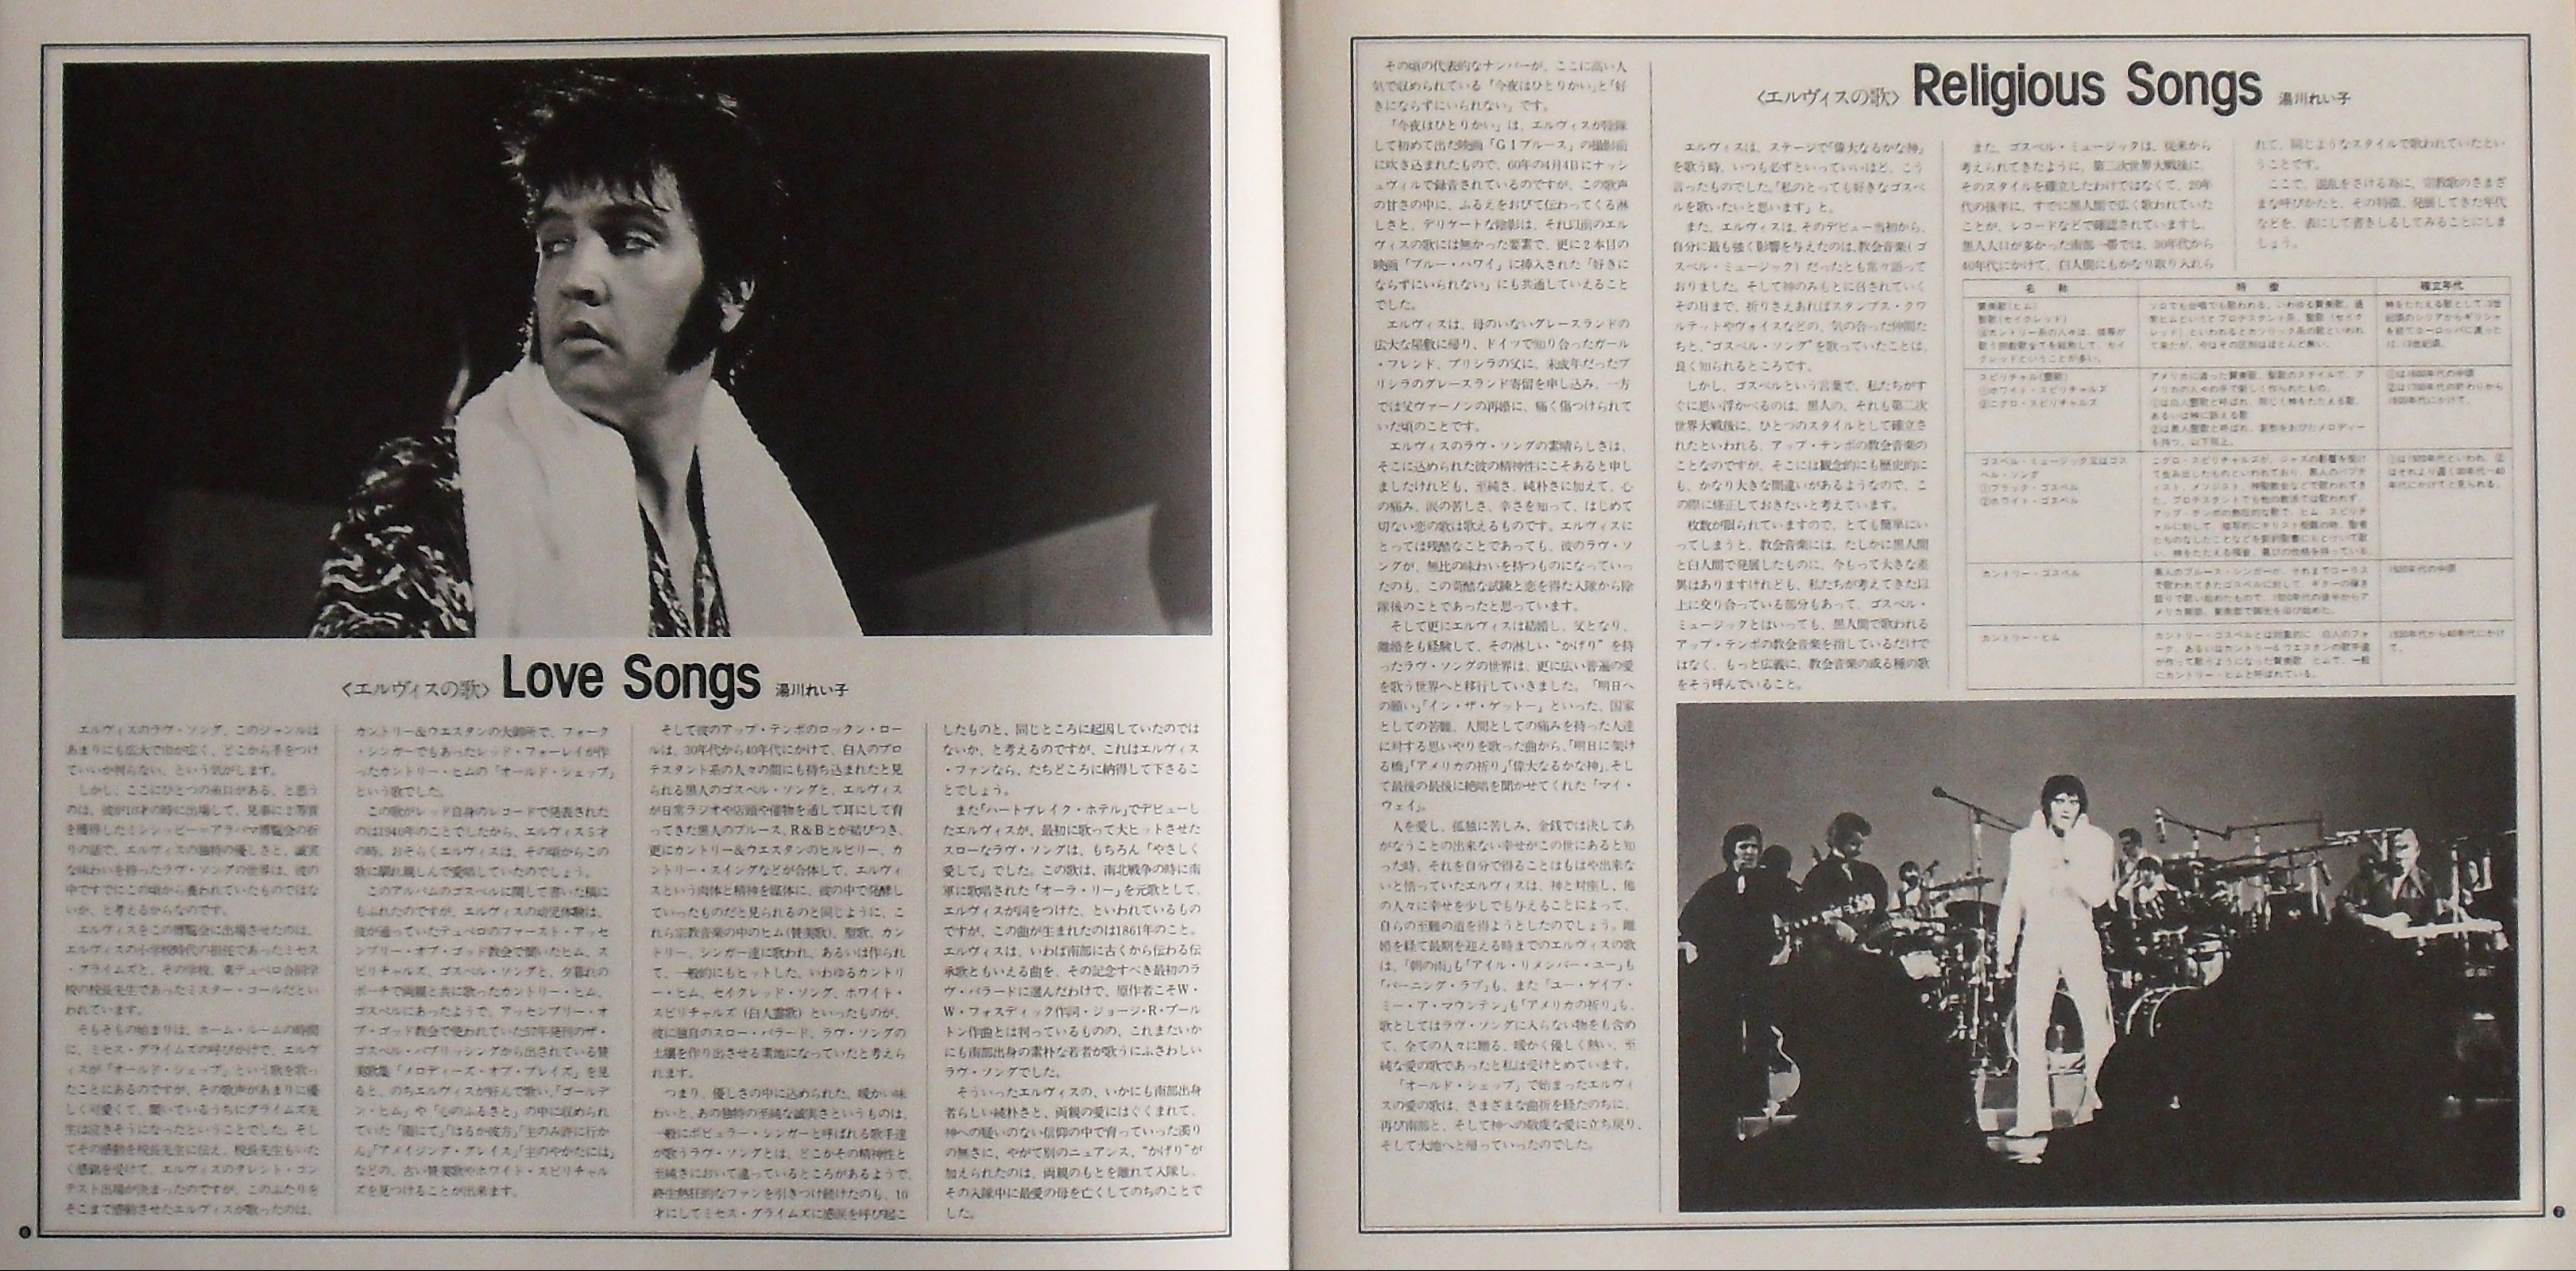 ELVIS BY REQUEST OF JAPANESE FANS 6_7e0lax